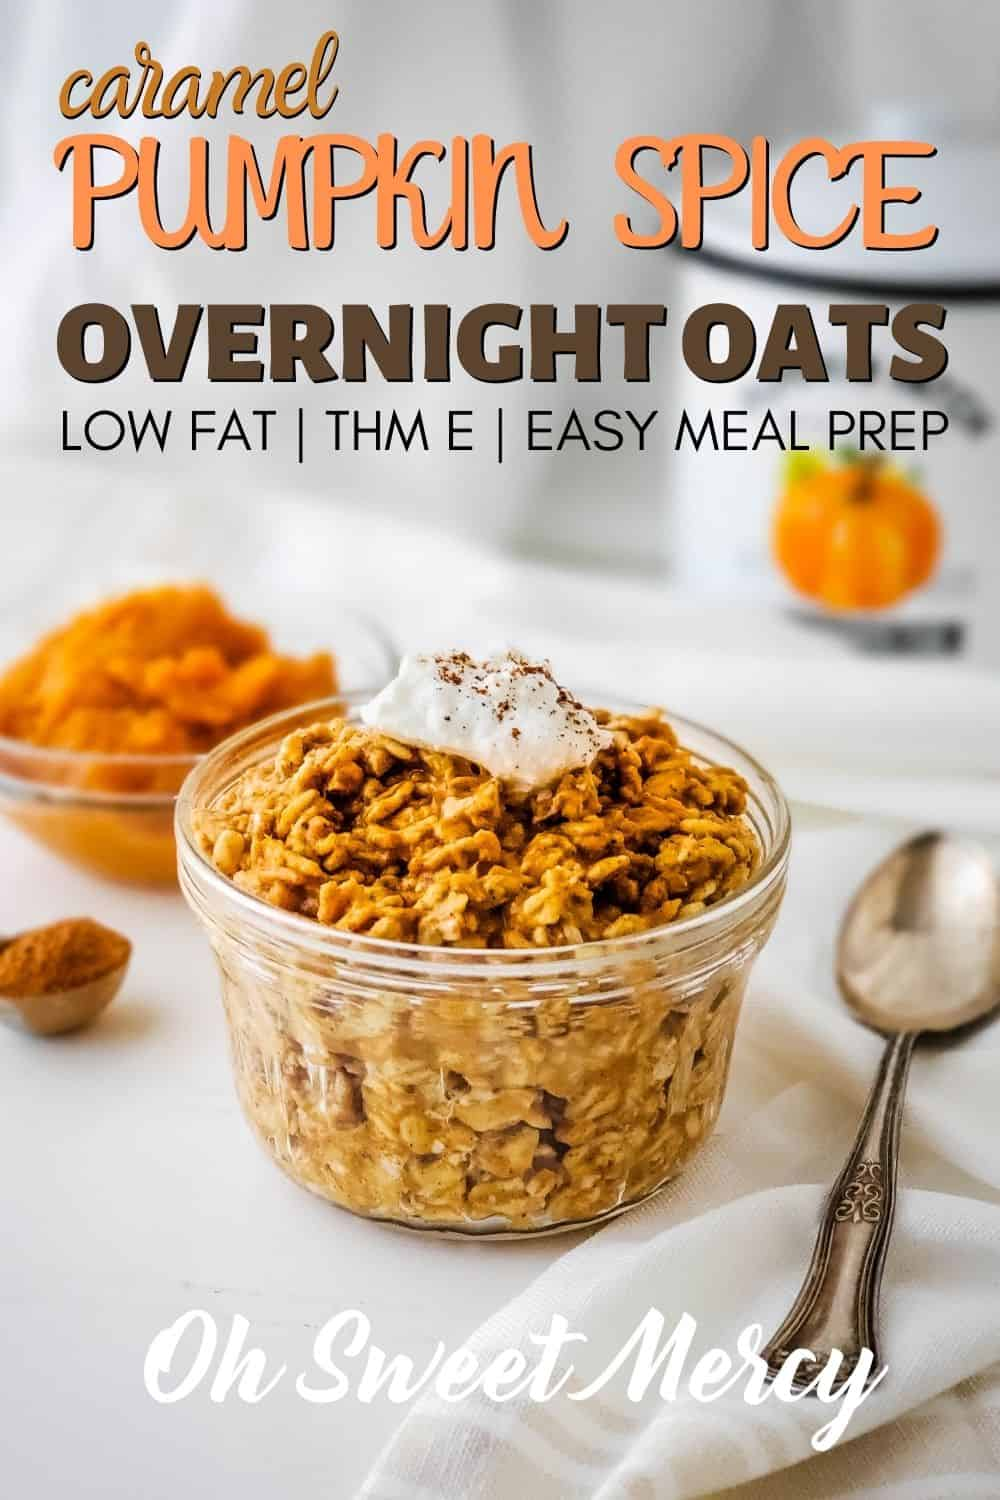 My tasty Caramel Pumpkin Spice Overnight Oats recipe is perfect for meal prep making packing for lunches or a grab and go snack super easy. Stay on plan for THM with this low fat, healthy carb recipe. #thm #lowfat #overnightoats #pintjaroats #pumpkinspice #mealprep @ohsweetmercy